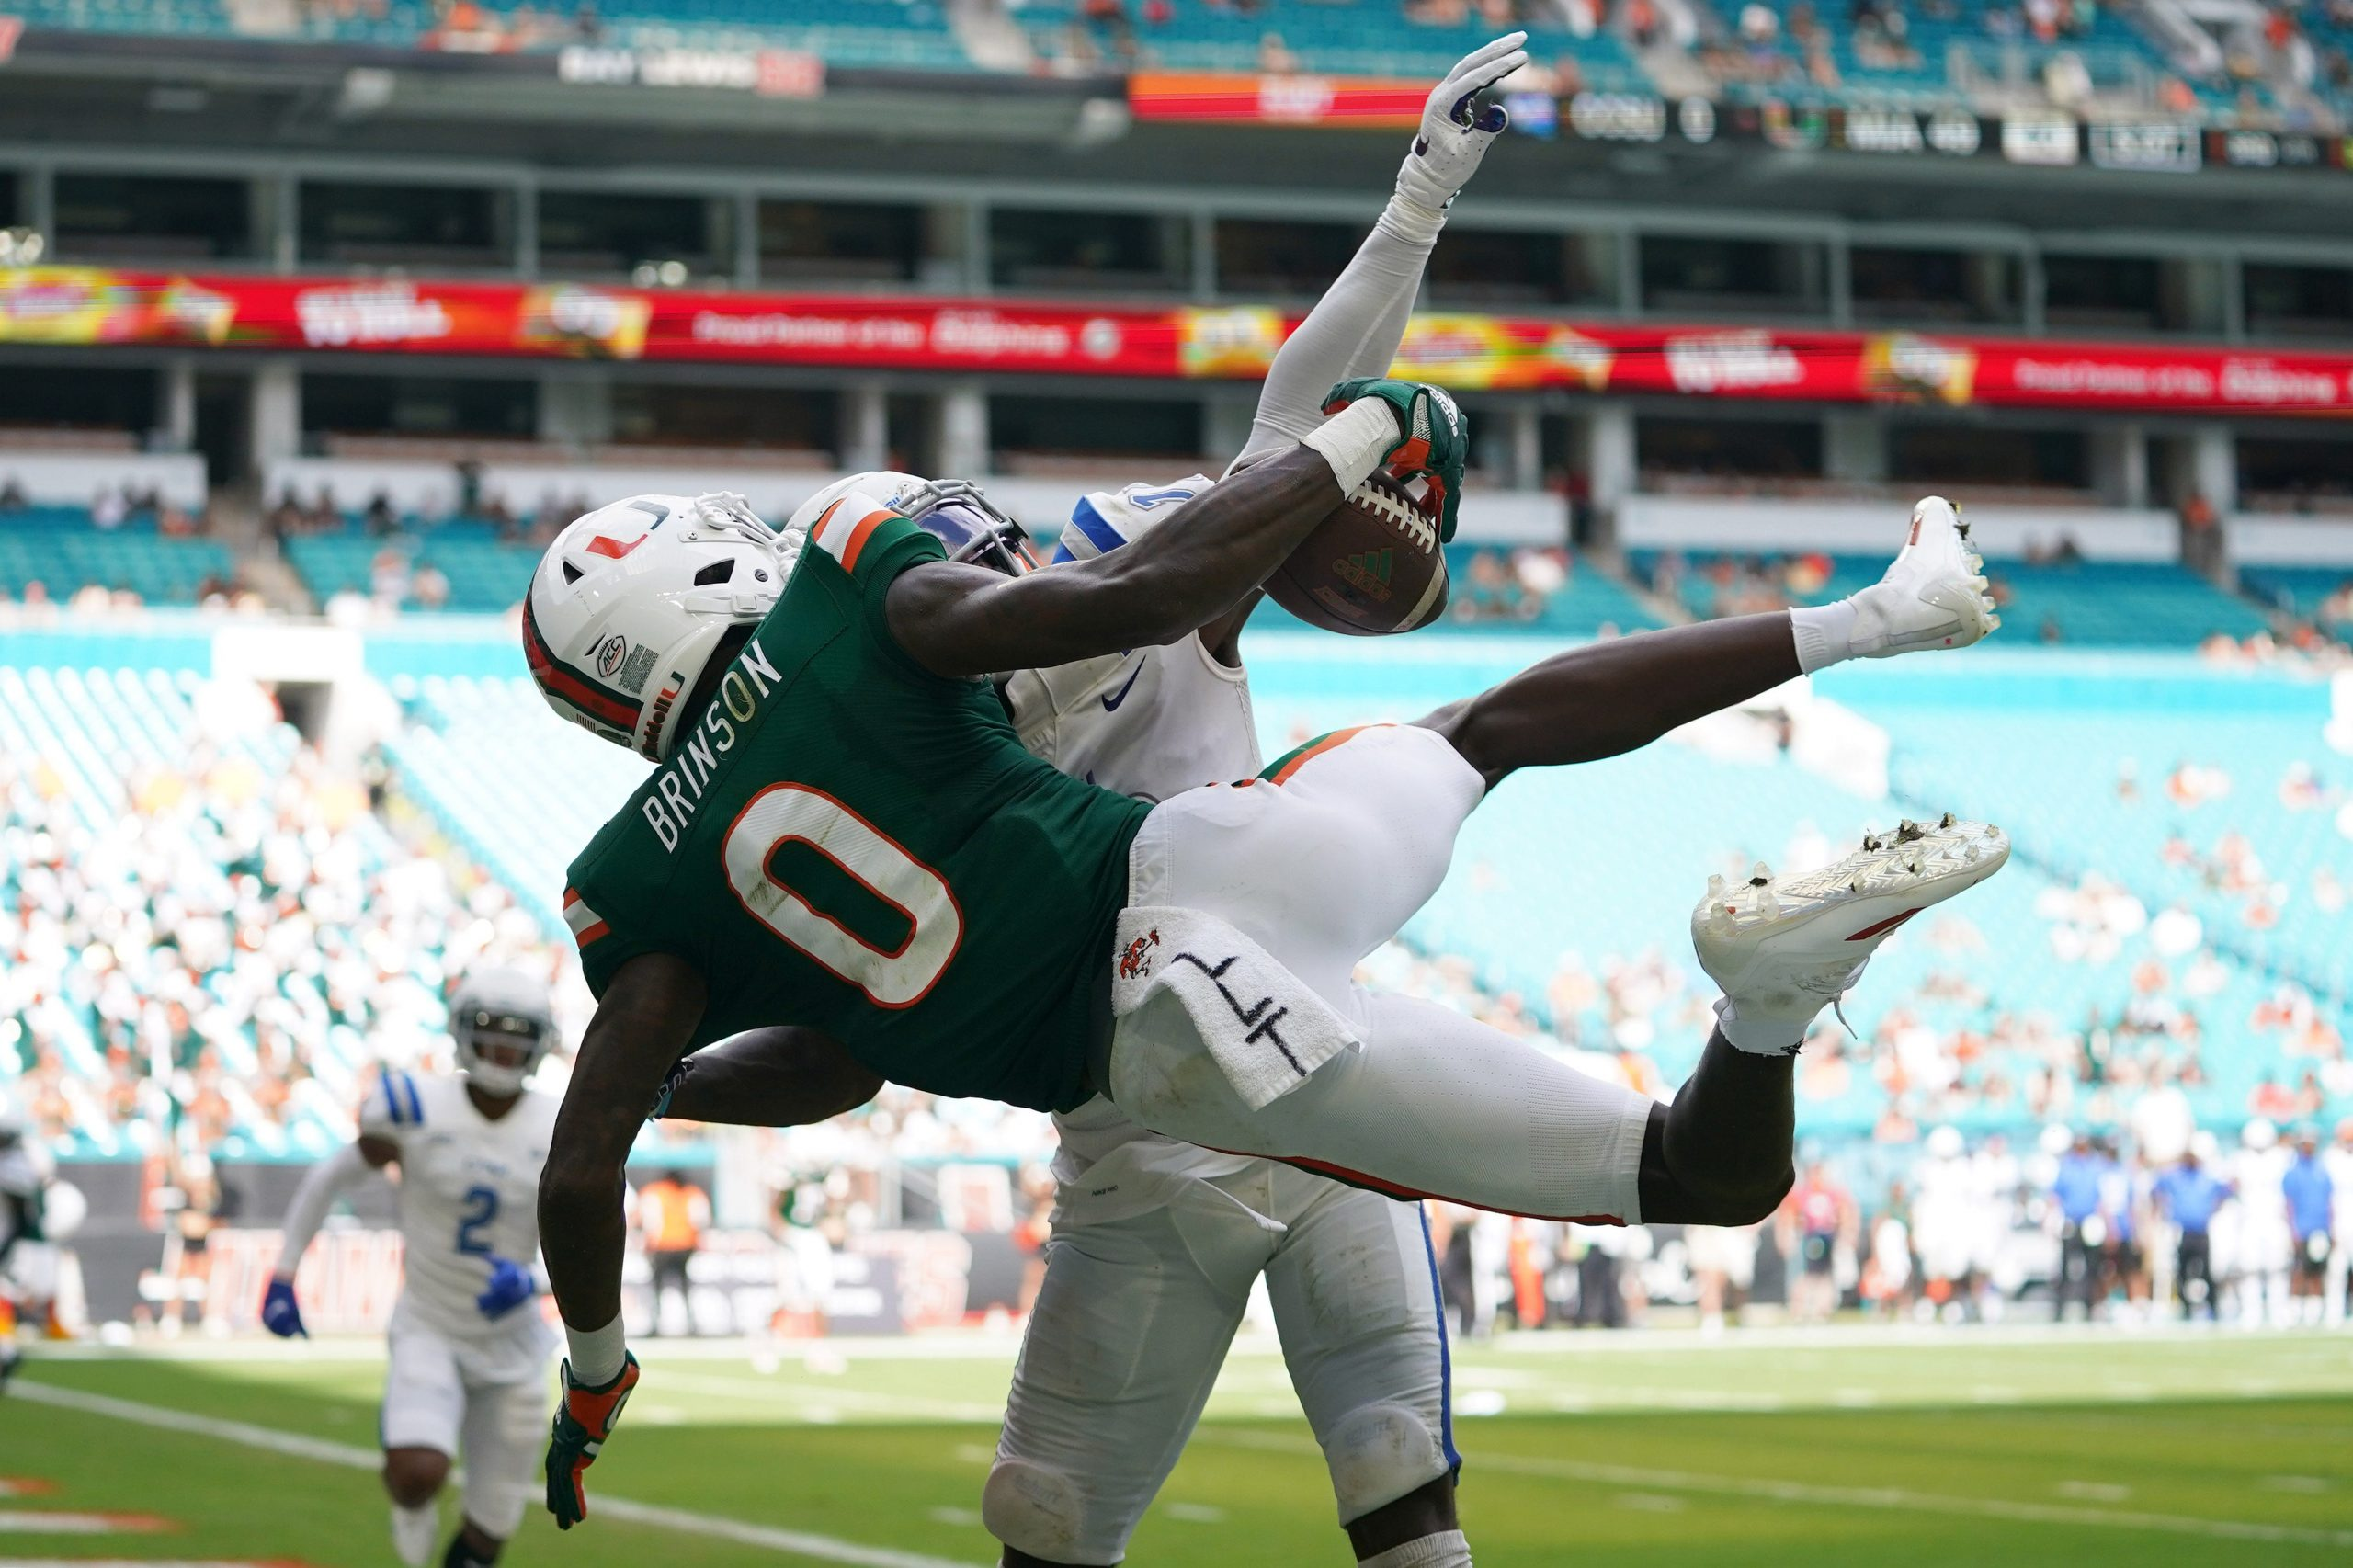 Best photos from college football Week 4